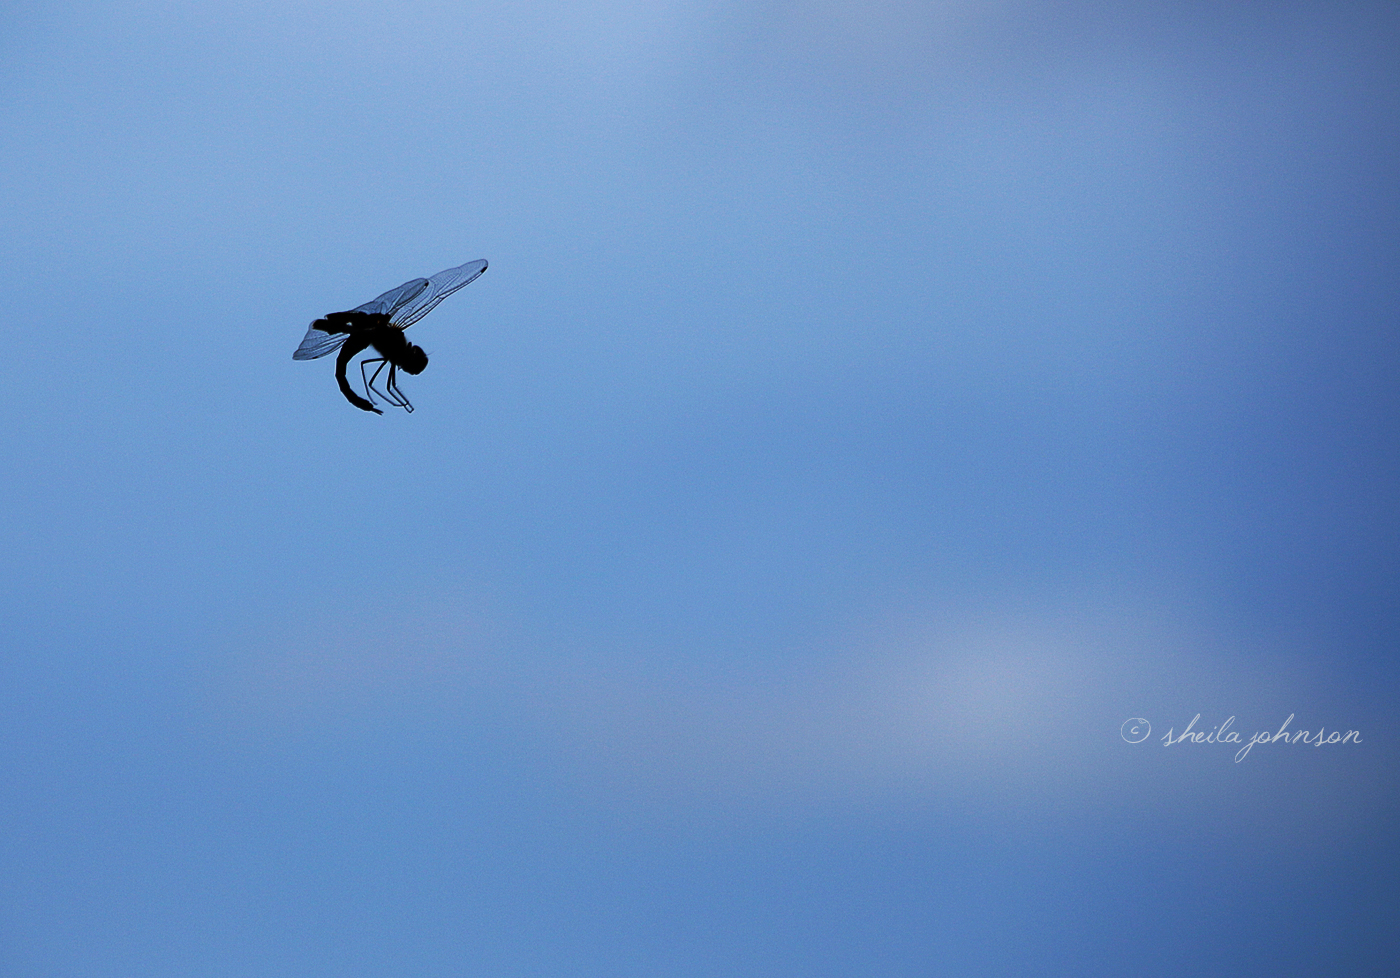 It's Hard To See, When They're Flying Full-Speed Ahead, But Dragonflies Sure Do Some Amazing Mid-Air Acrobatics.